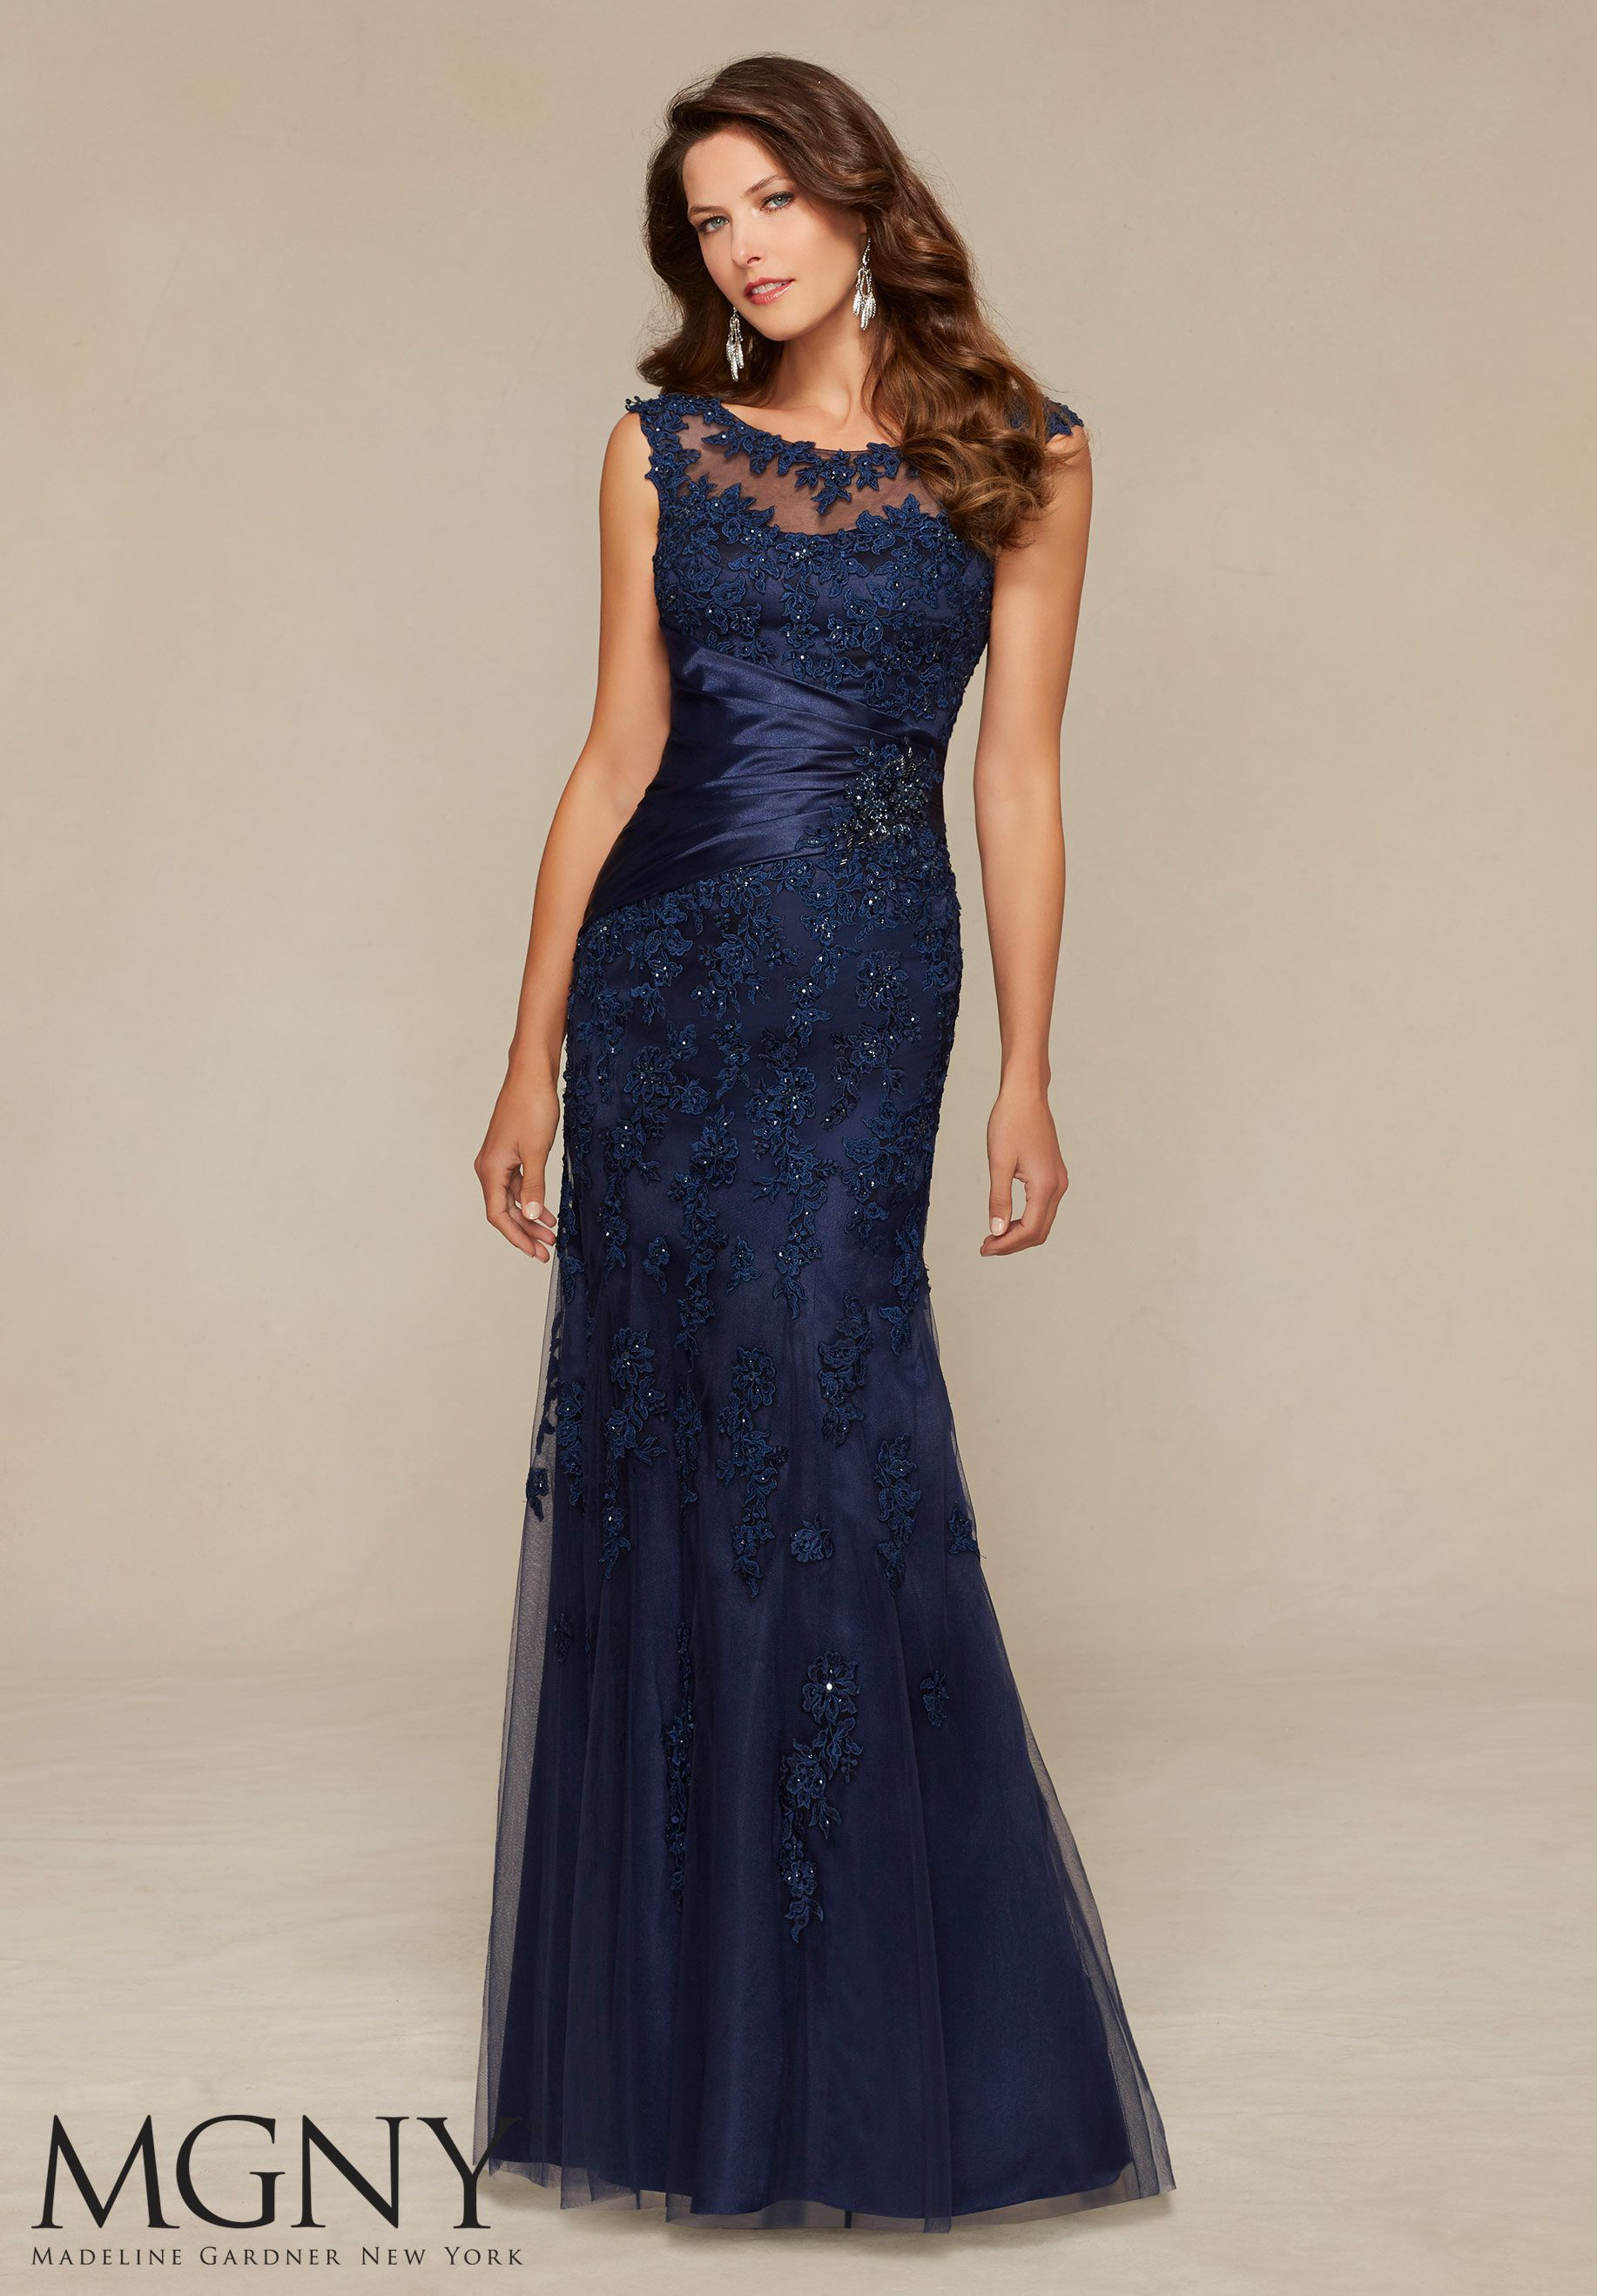 Beaded Lace Appliqués on Net Trimmed with Satin Evening Dress ...